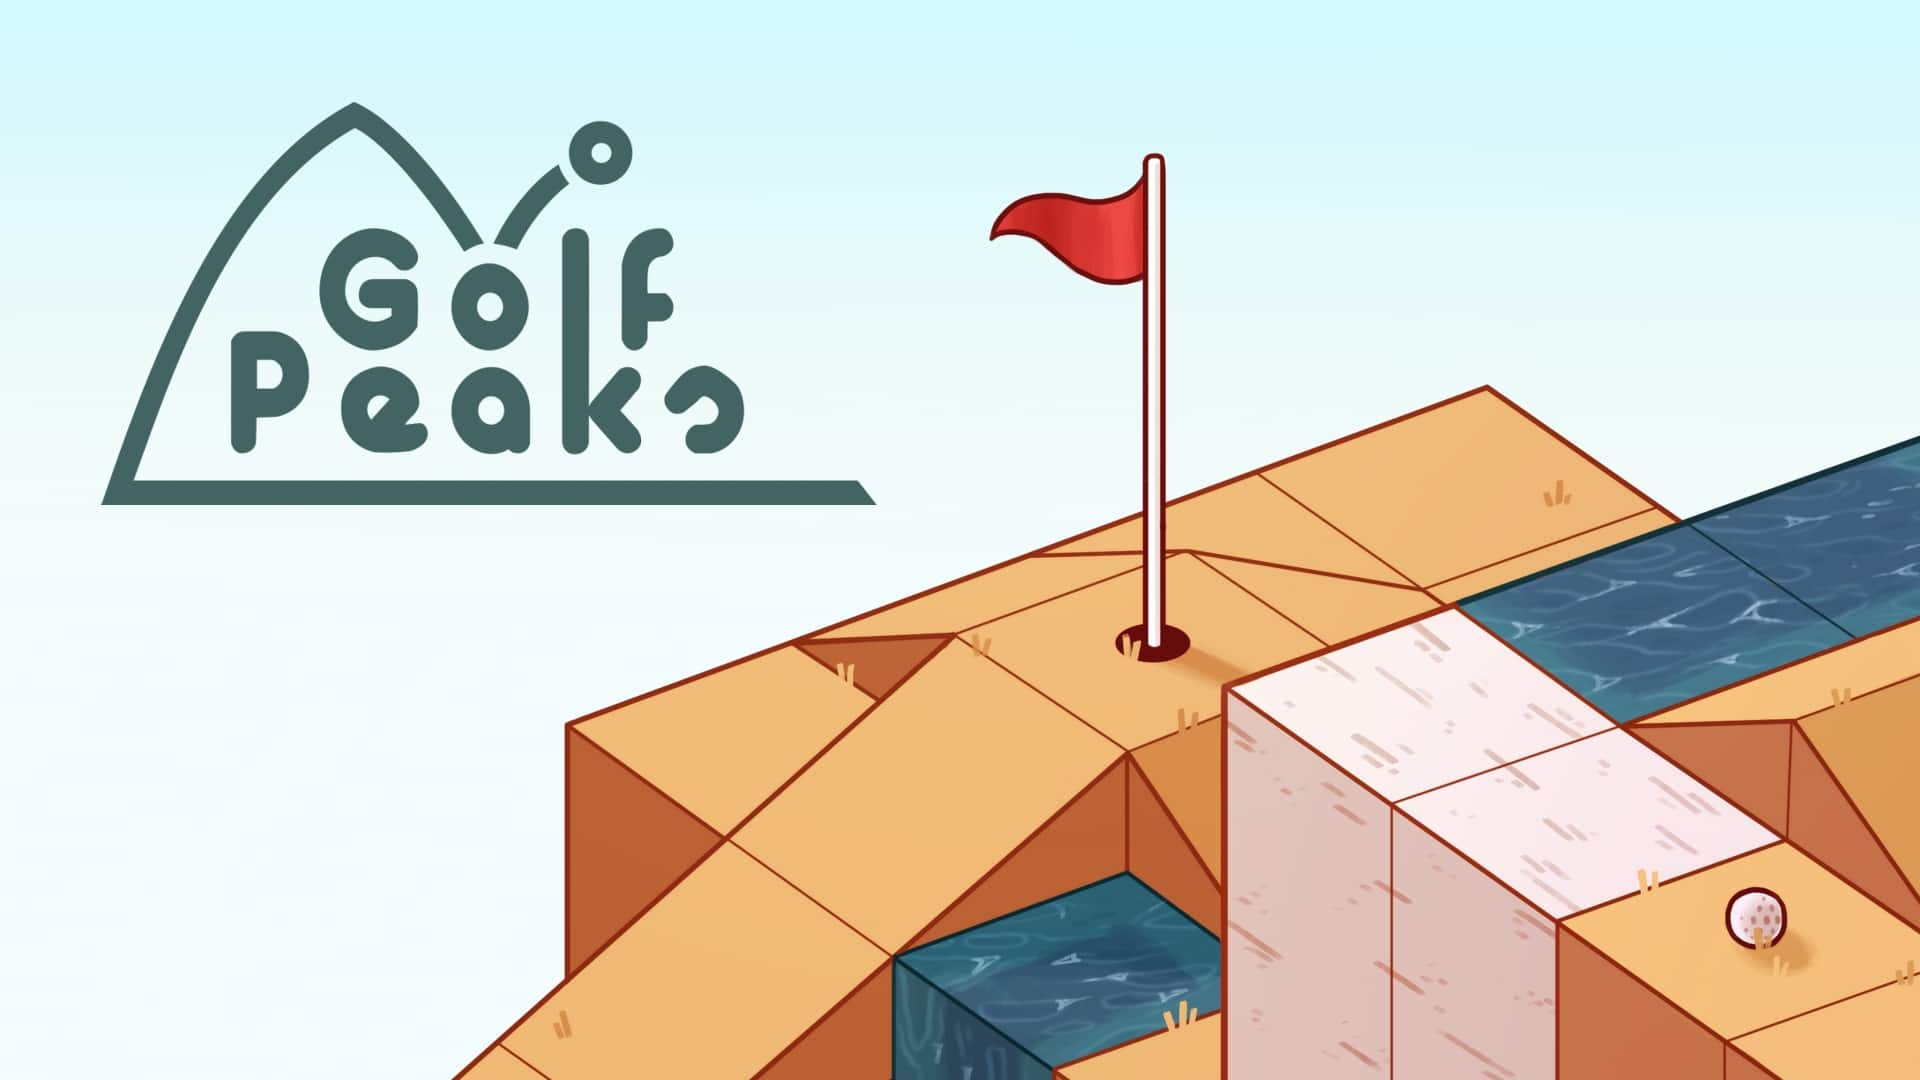 Nintendo Switch Digital Download - Golf Peaks - $1.99 @ Nintendo Game Store